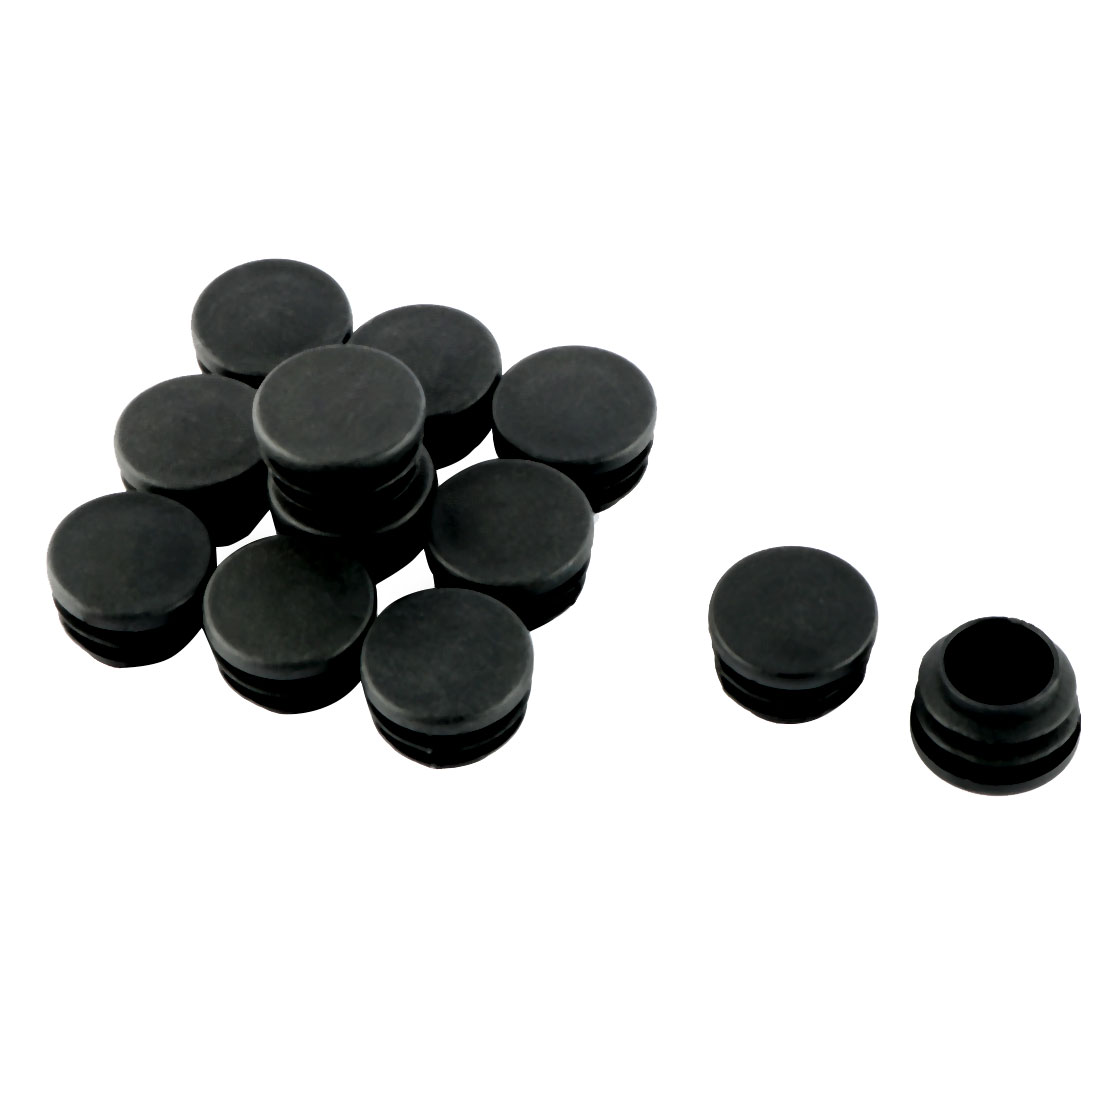 "12 Pcs Black 25mm 1"" Diameter Blanking End Caps Covers Tube Insert"